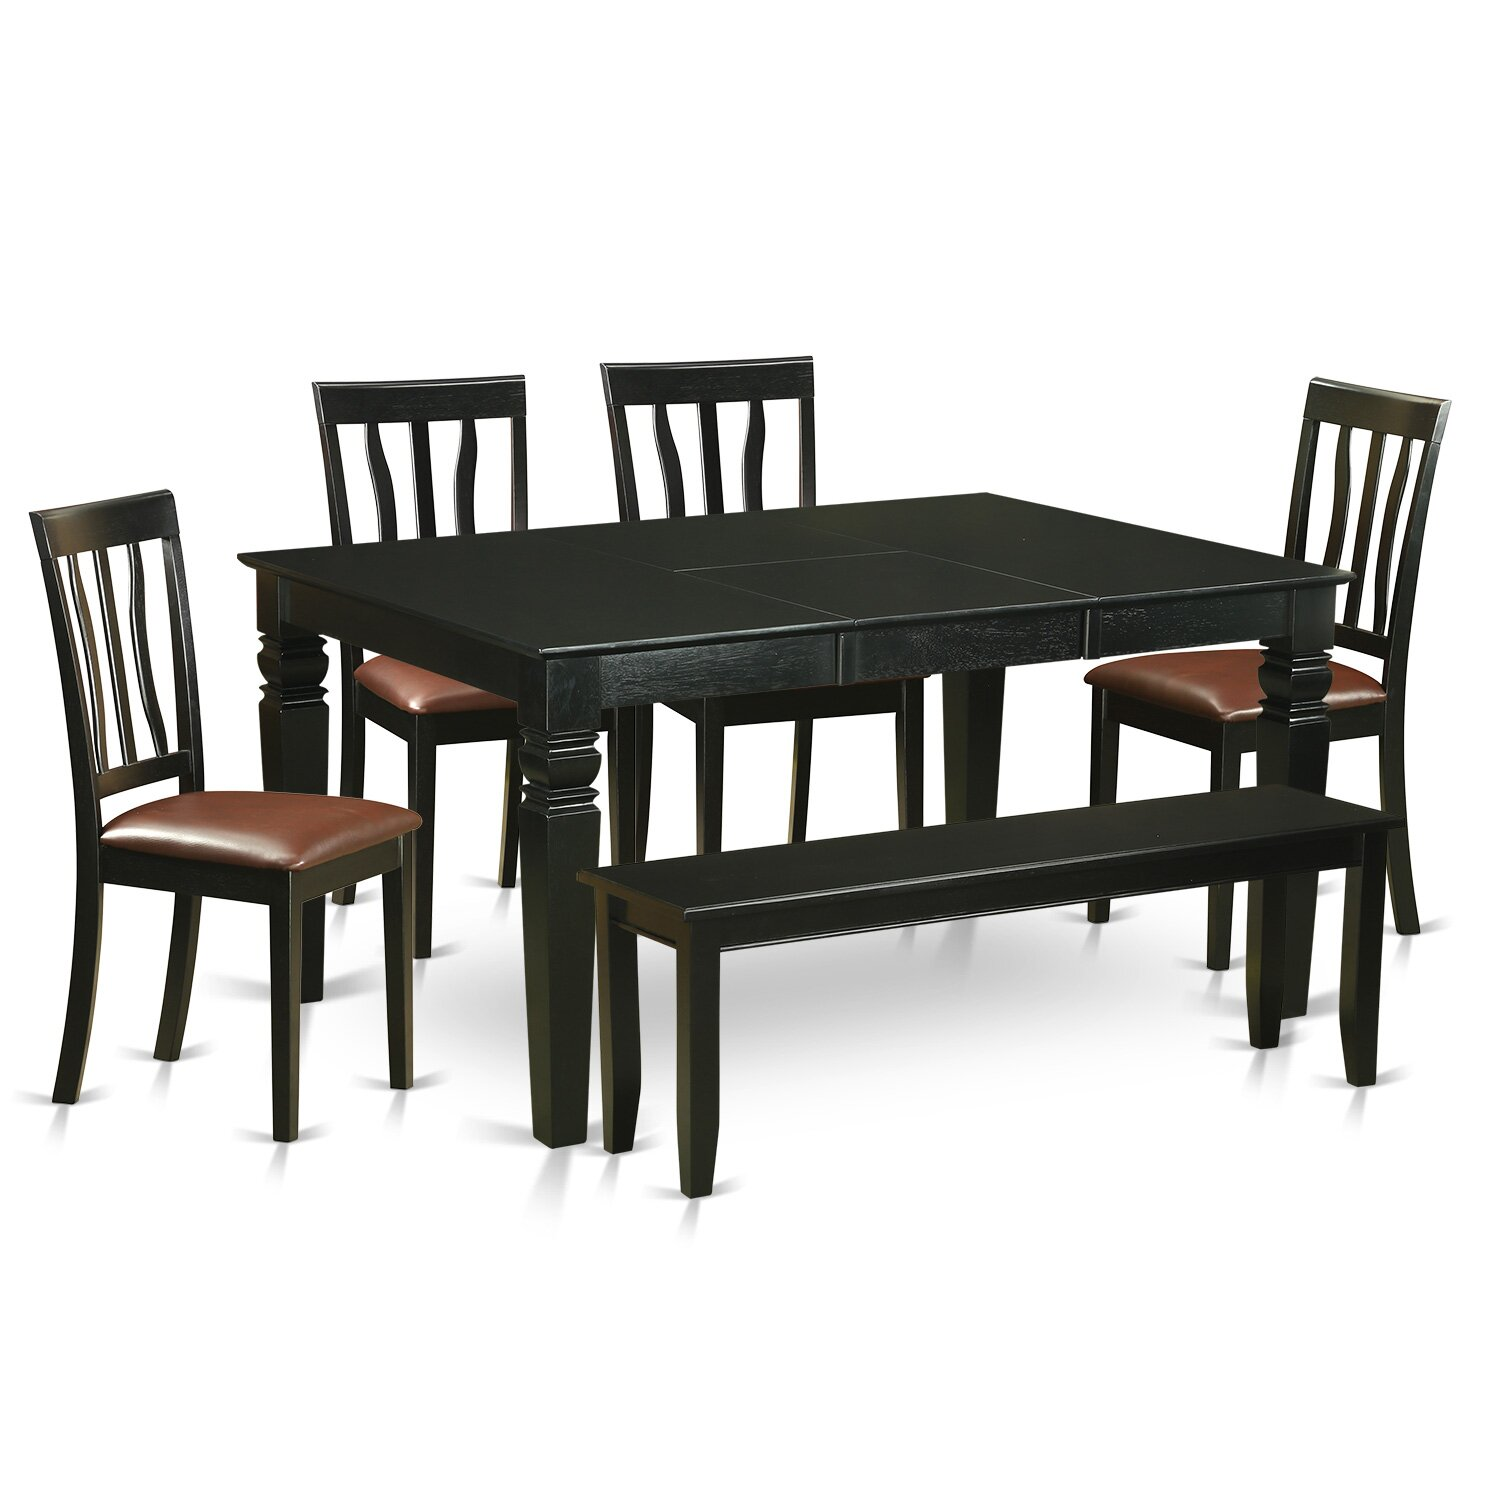 Wooden importers weston 6 piece dining set wayfair for 4 dining room table